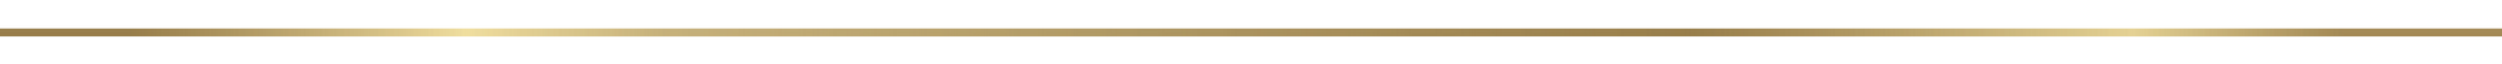 Zerella logo gold strip.png